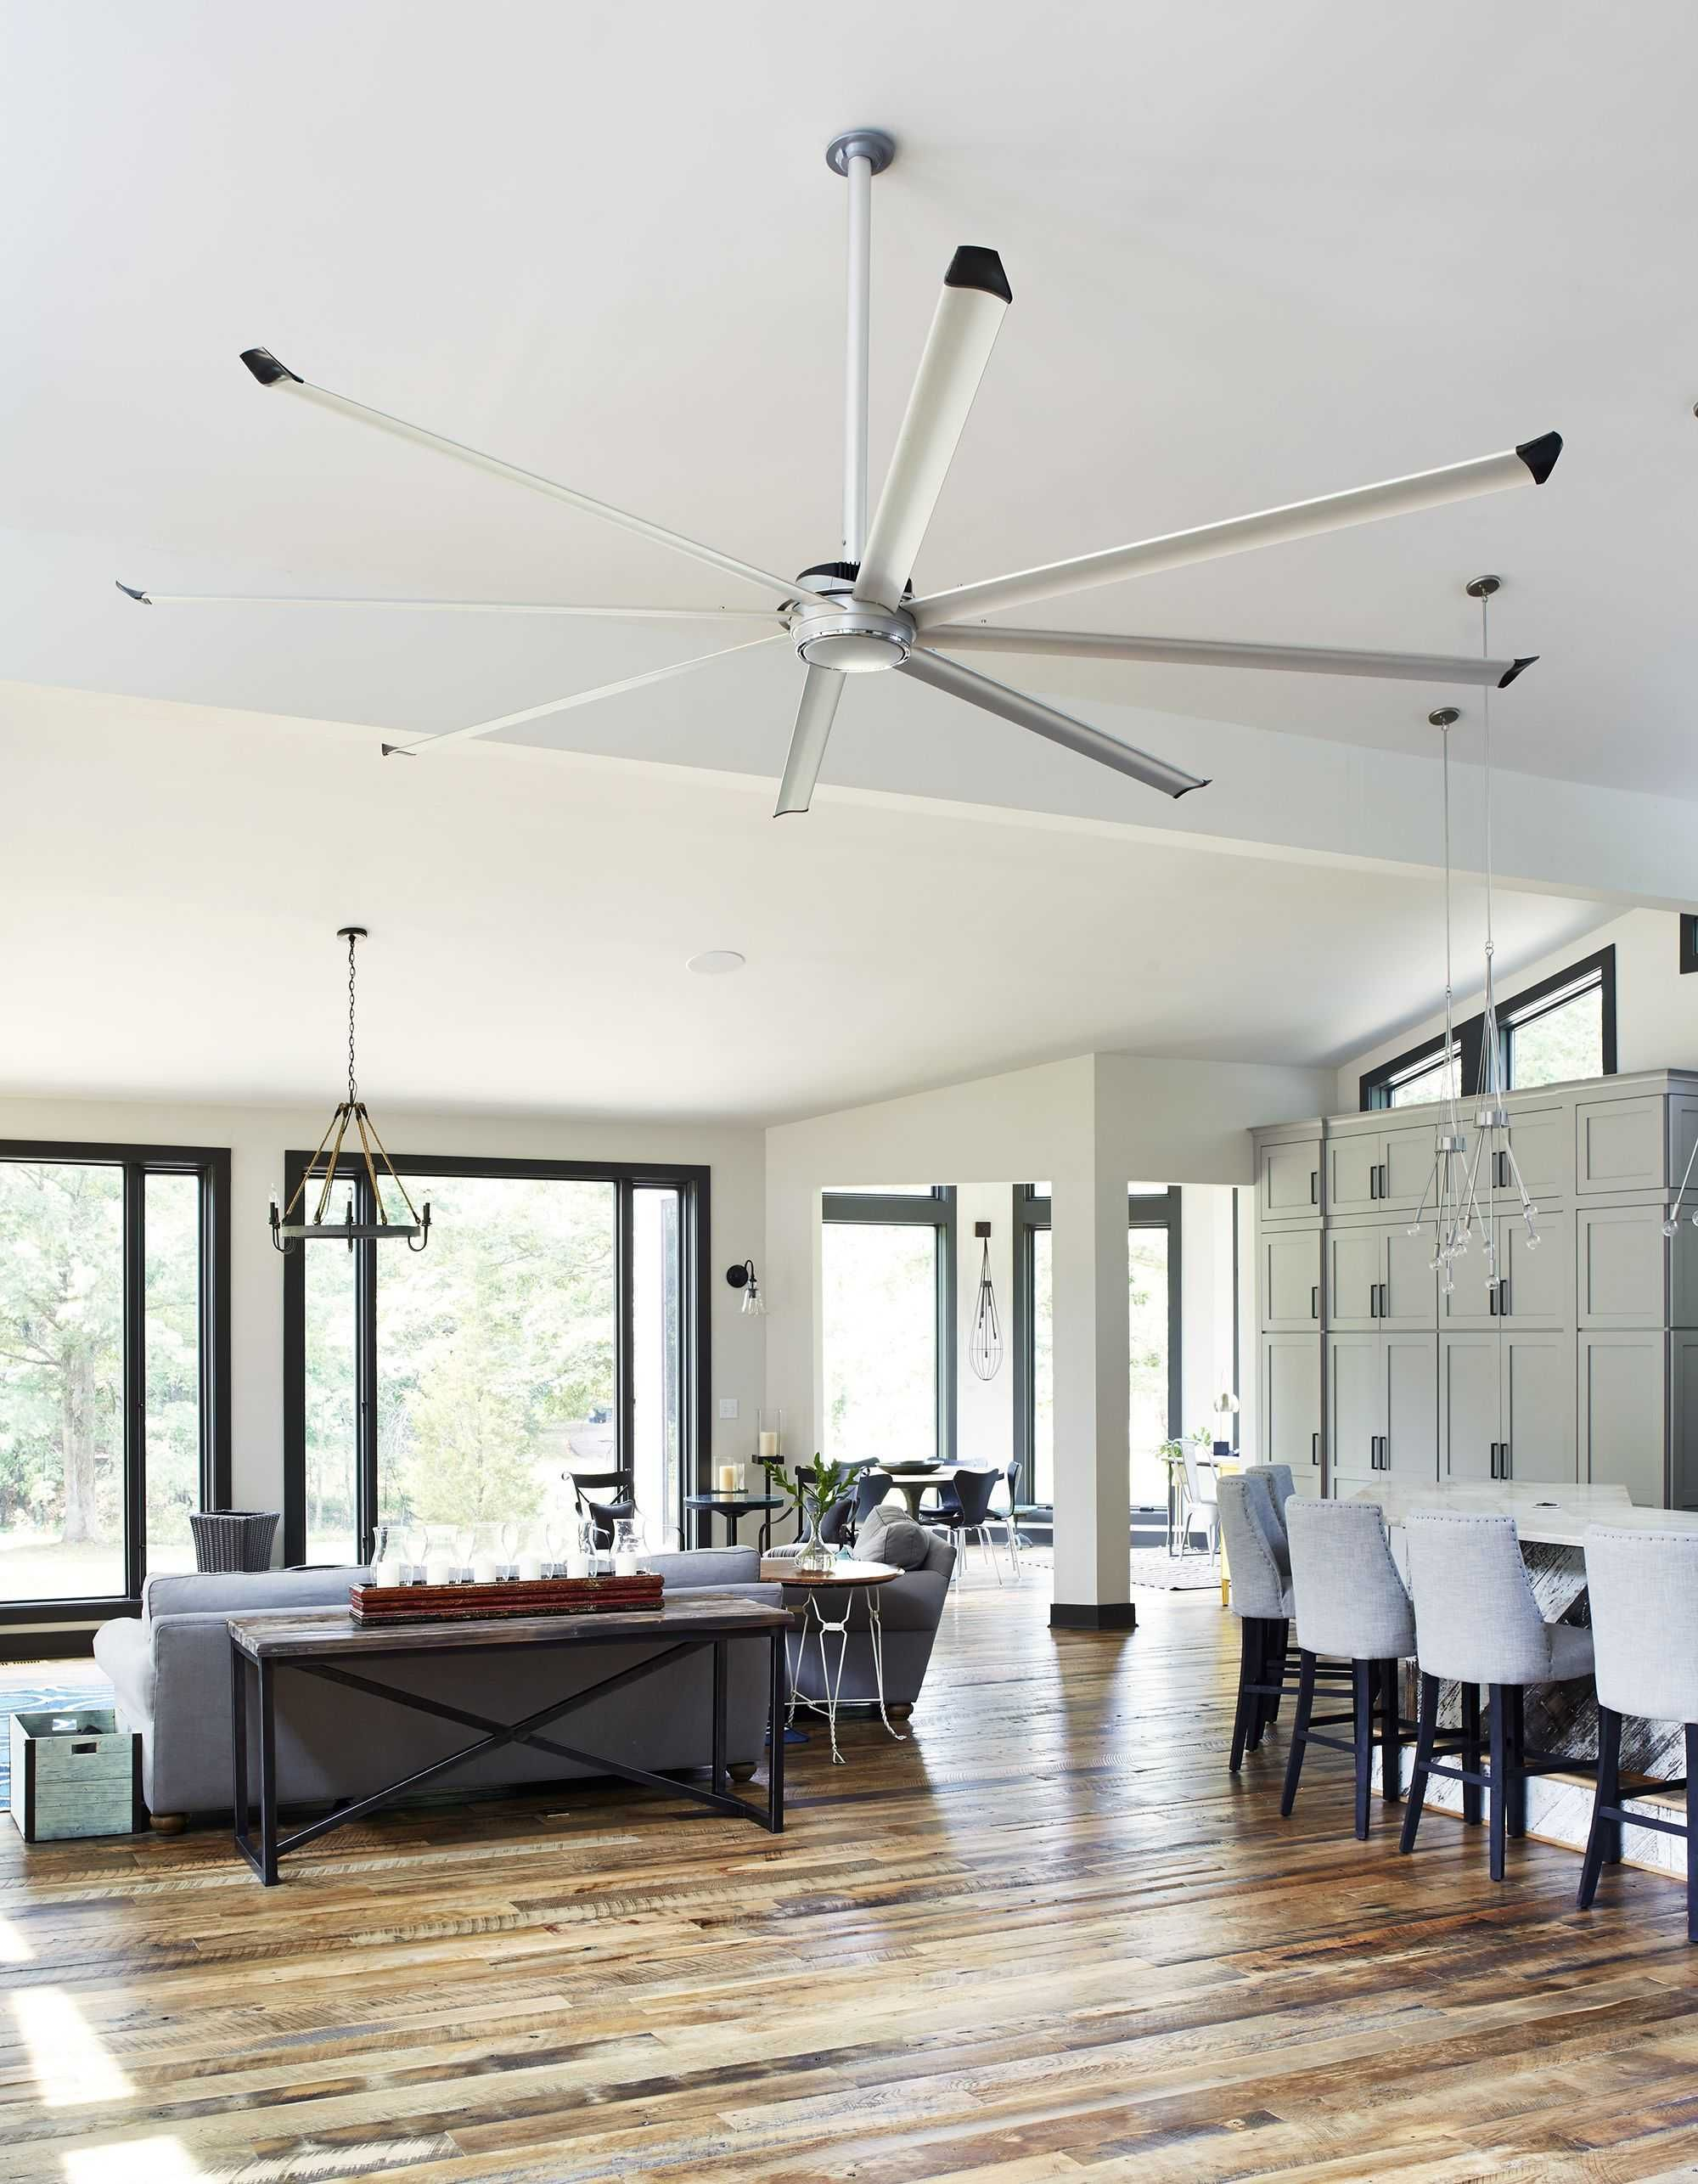 Kitchen Ceiling Fans Cool And Classic Design Of Ceiling